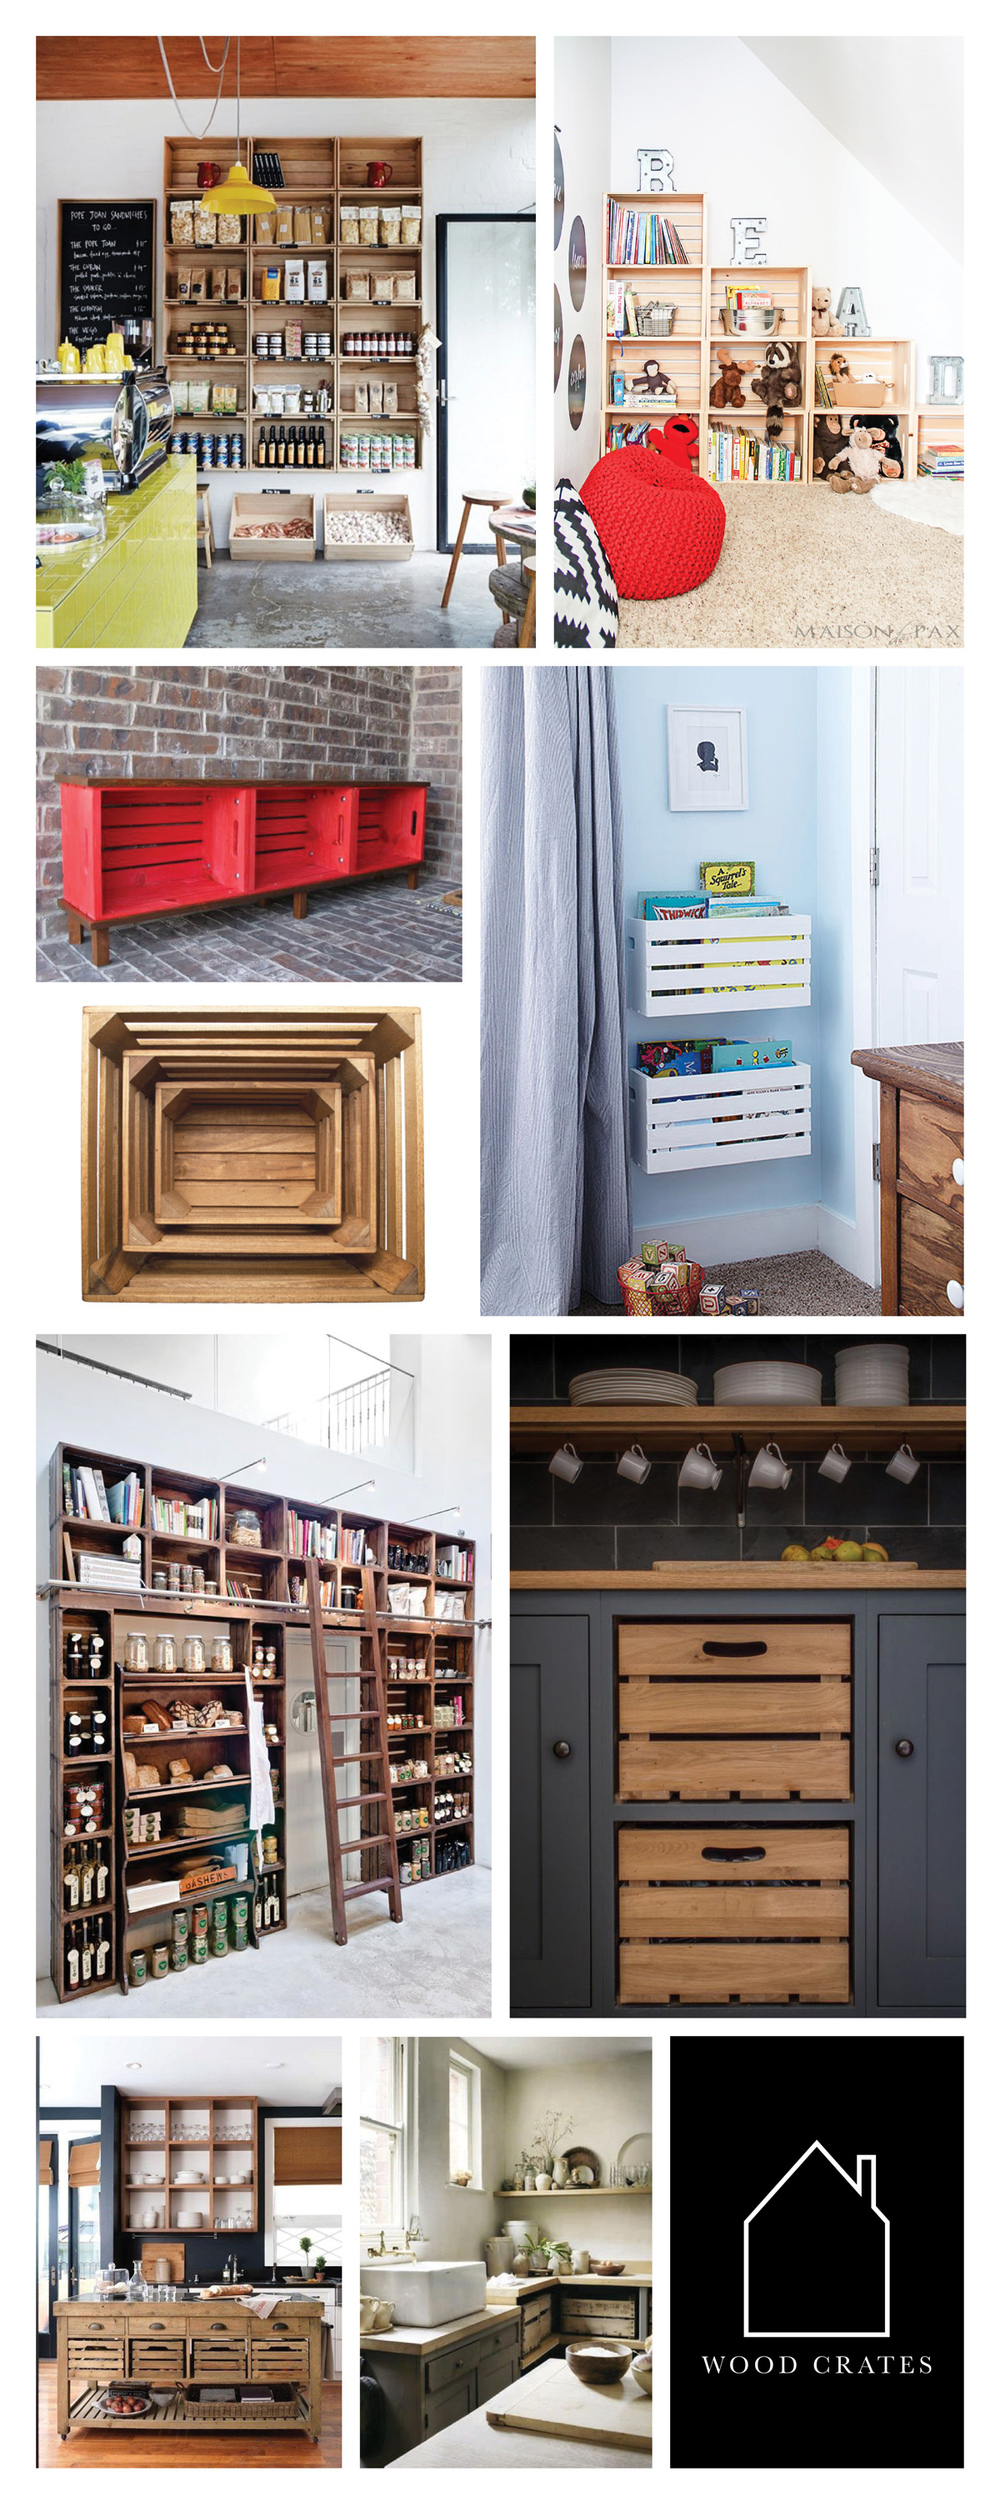 from top left  -  Hams and Bacon  via  Designed for Life  - via  Maison de Pax  - via  Hometalk  - via  BHG  - wooden crates via  Kaufmann Mercantile  - source unknown - Cotswold Chapel Kitchen via  Sustainable Kitchens  -  via  Apartment Therapy  - via  Vakre Hjem & Interior